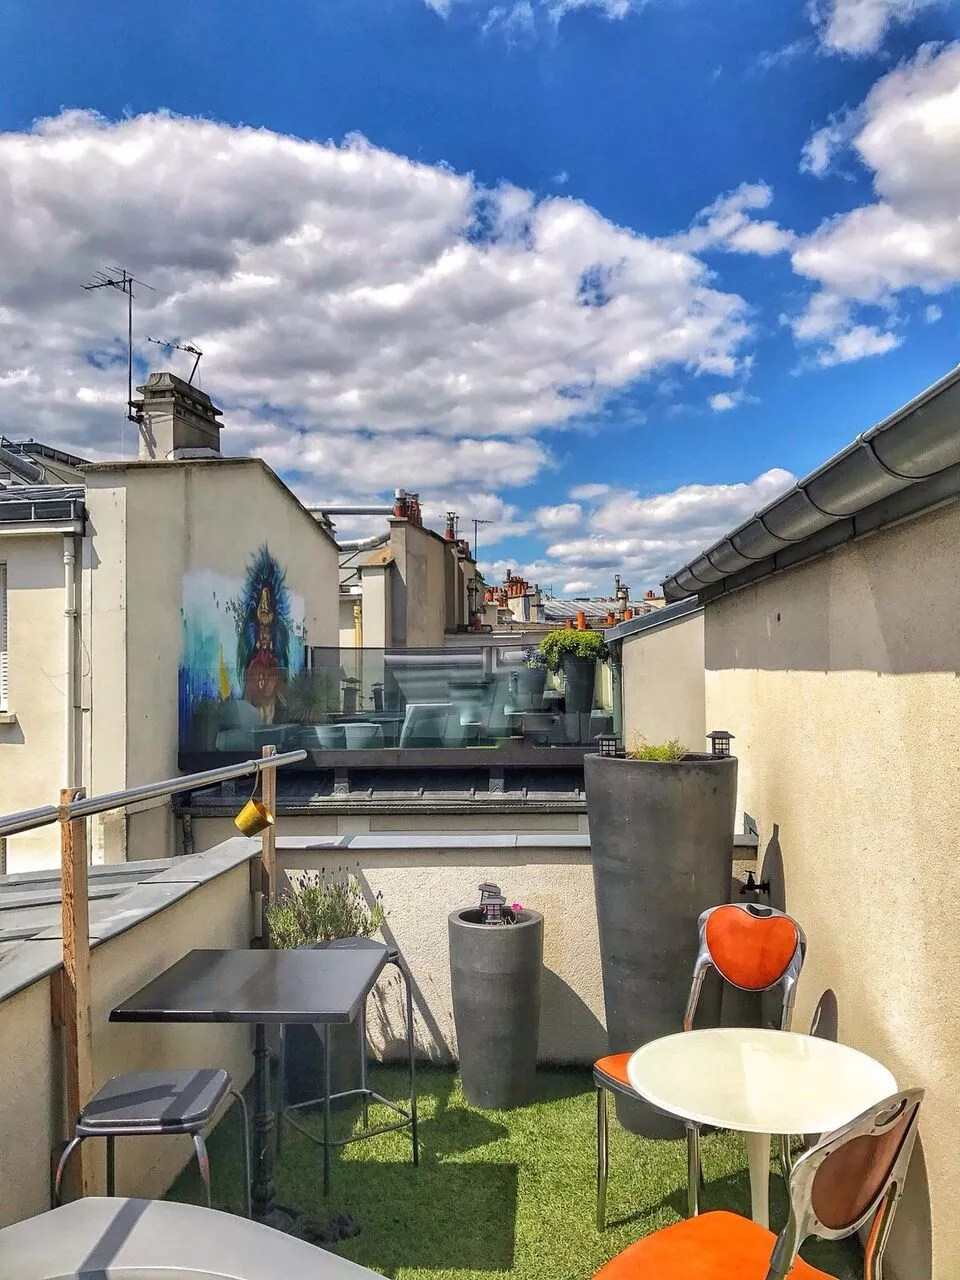 Toit Terrasse Cocktail Paris La Suite Piscine | Rooftop à Privatiser Gratuitement Sur